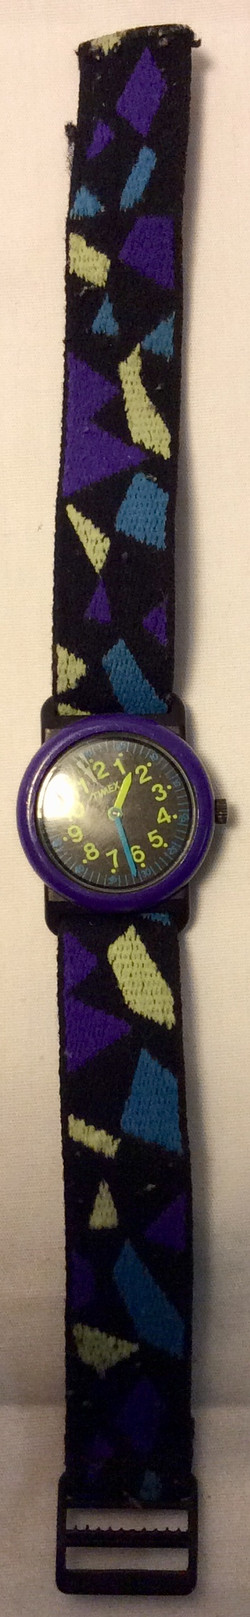 Blue and black Timex Watch